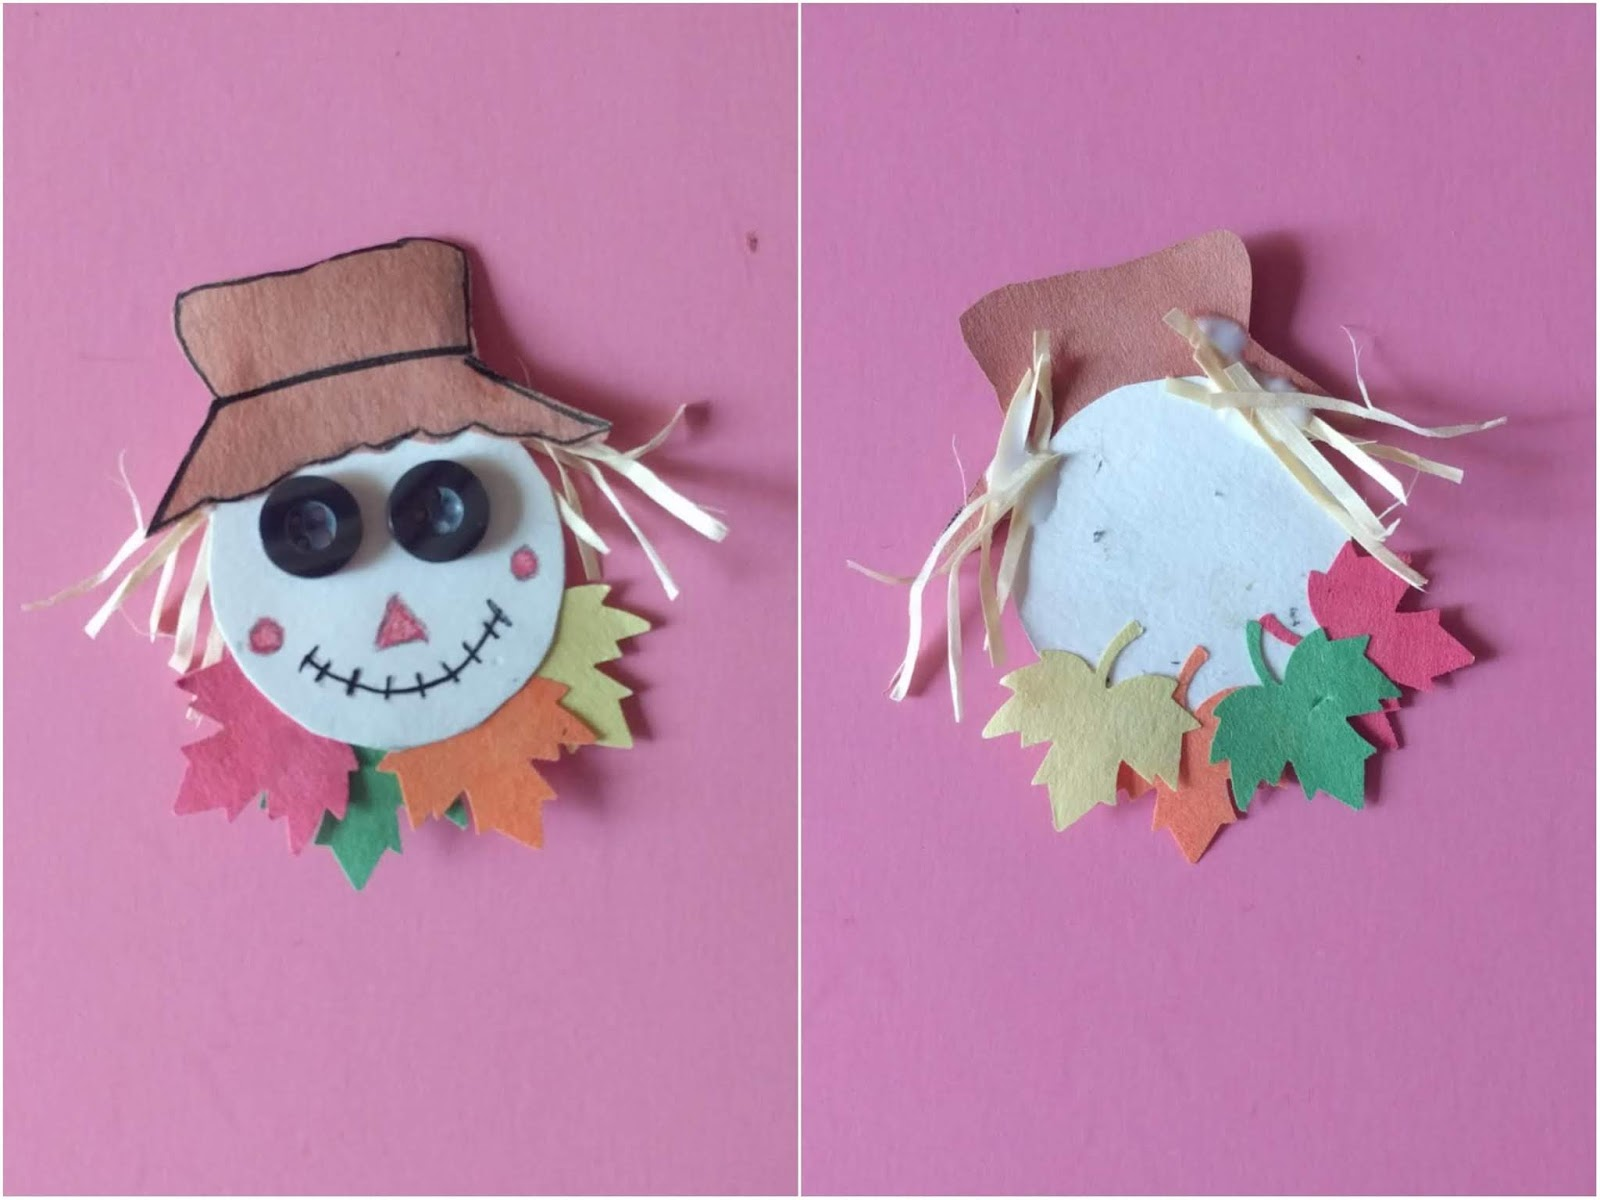 Halloween Crafts, Halloween, Halloween Crafts for Kids, Scarecrow, Halloween ideas, halloween gifts, halloween decoration, halloween decor, halloween scarecrow craft, jack-in-the-box, DIY, DIY toy, toy for kids, handmade gift idea, halloween fun for kids, halloween project, halloween arts and crafts, fall crafts, fall arts, halloween arts, scarecrow toy, Kids craft, crafts for kids, craft ideas, kids crafts, craft ideas for kids, paper craft, art projects for kids, easy crafts for kids, fun craft for kids, kids arts and crafts, kids projects, art and crafts ideas, toddler crafts, toddler fun, preschool craft ideas, kindergarten crafts, crafts for young kids, school crafts, interactive crafts, puppet, cute crafts for kids, creative crafts, creative art, creative projects for kids.